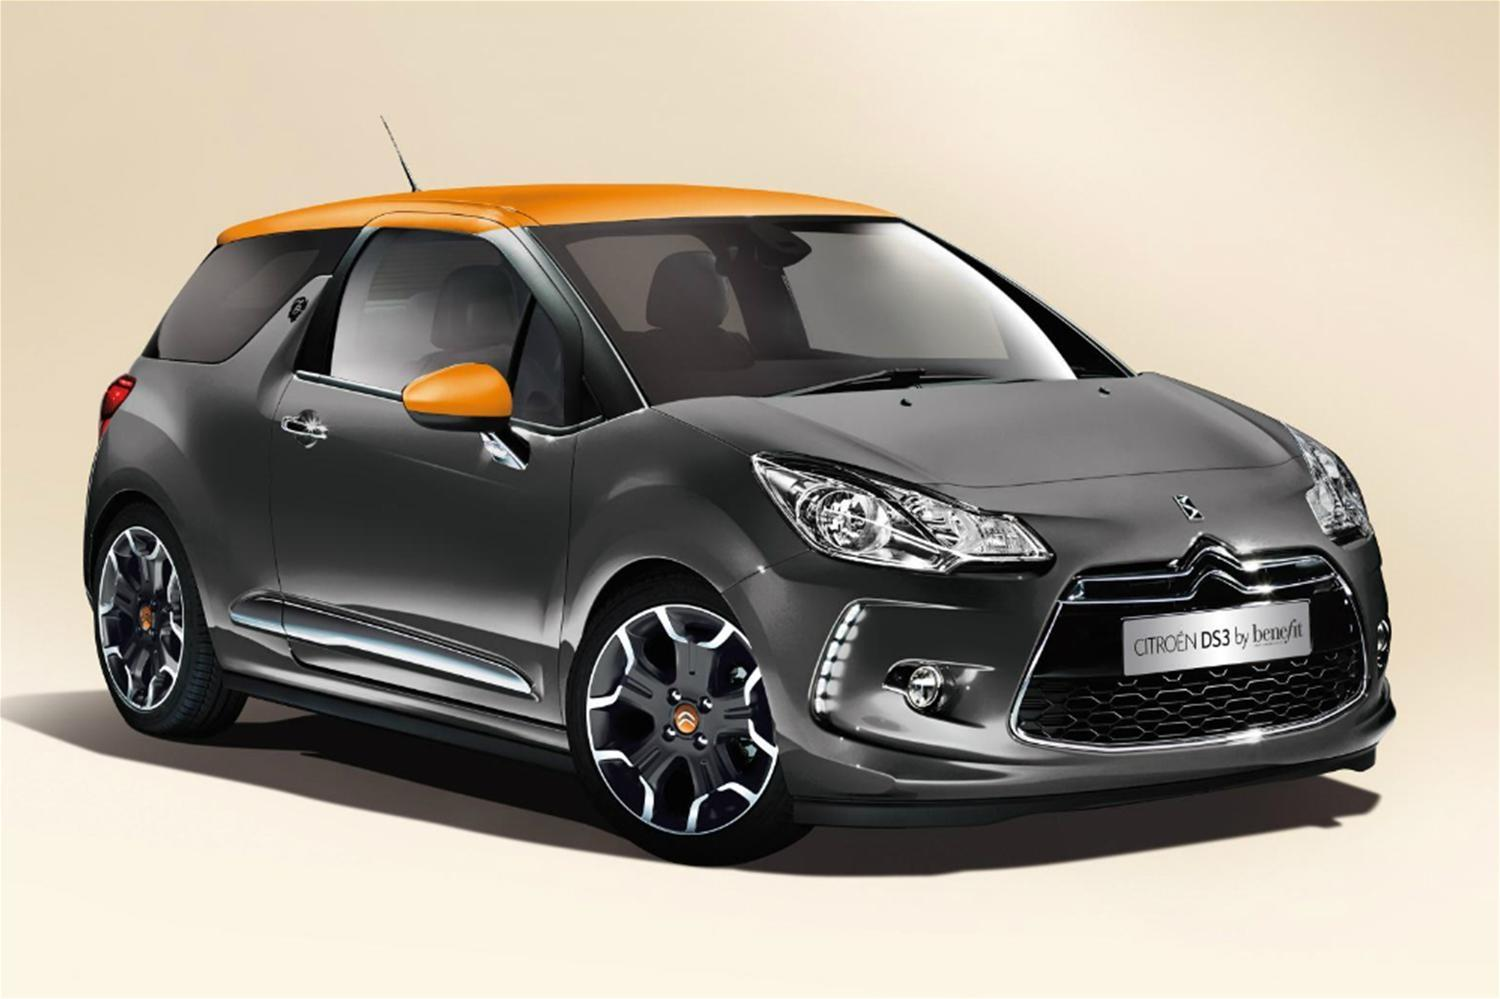 Citroen DS3 Benefit Cosmetics Editions Launched